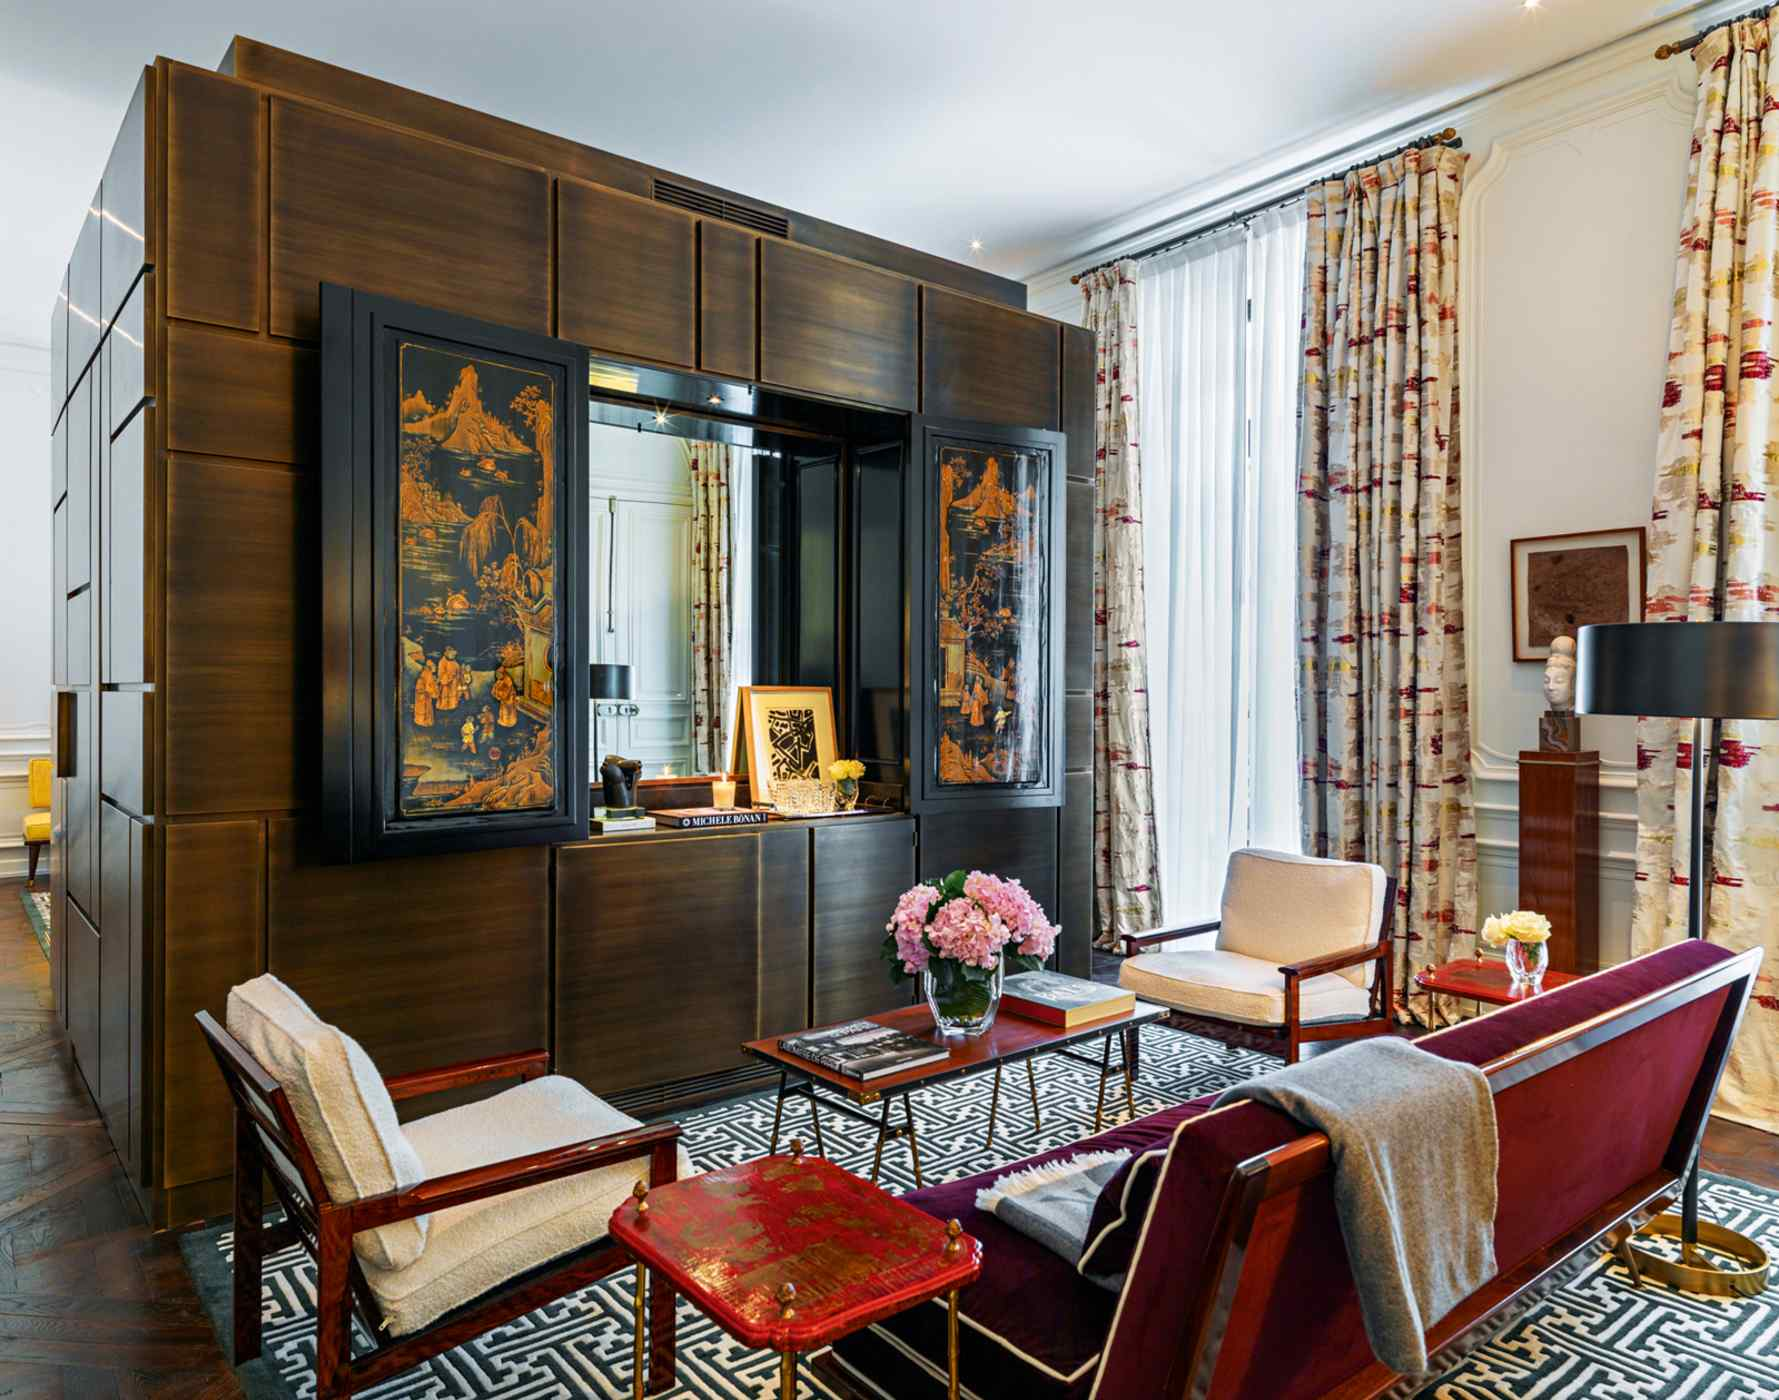 Positioned in the middle of the room of this suite is the ingenious design of a hand-crafted double-sided cabinet carved from oak decapé - antique Chinese panels face the living area while the back transforms into the bed's headboard and a closet